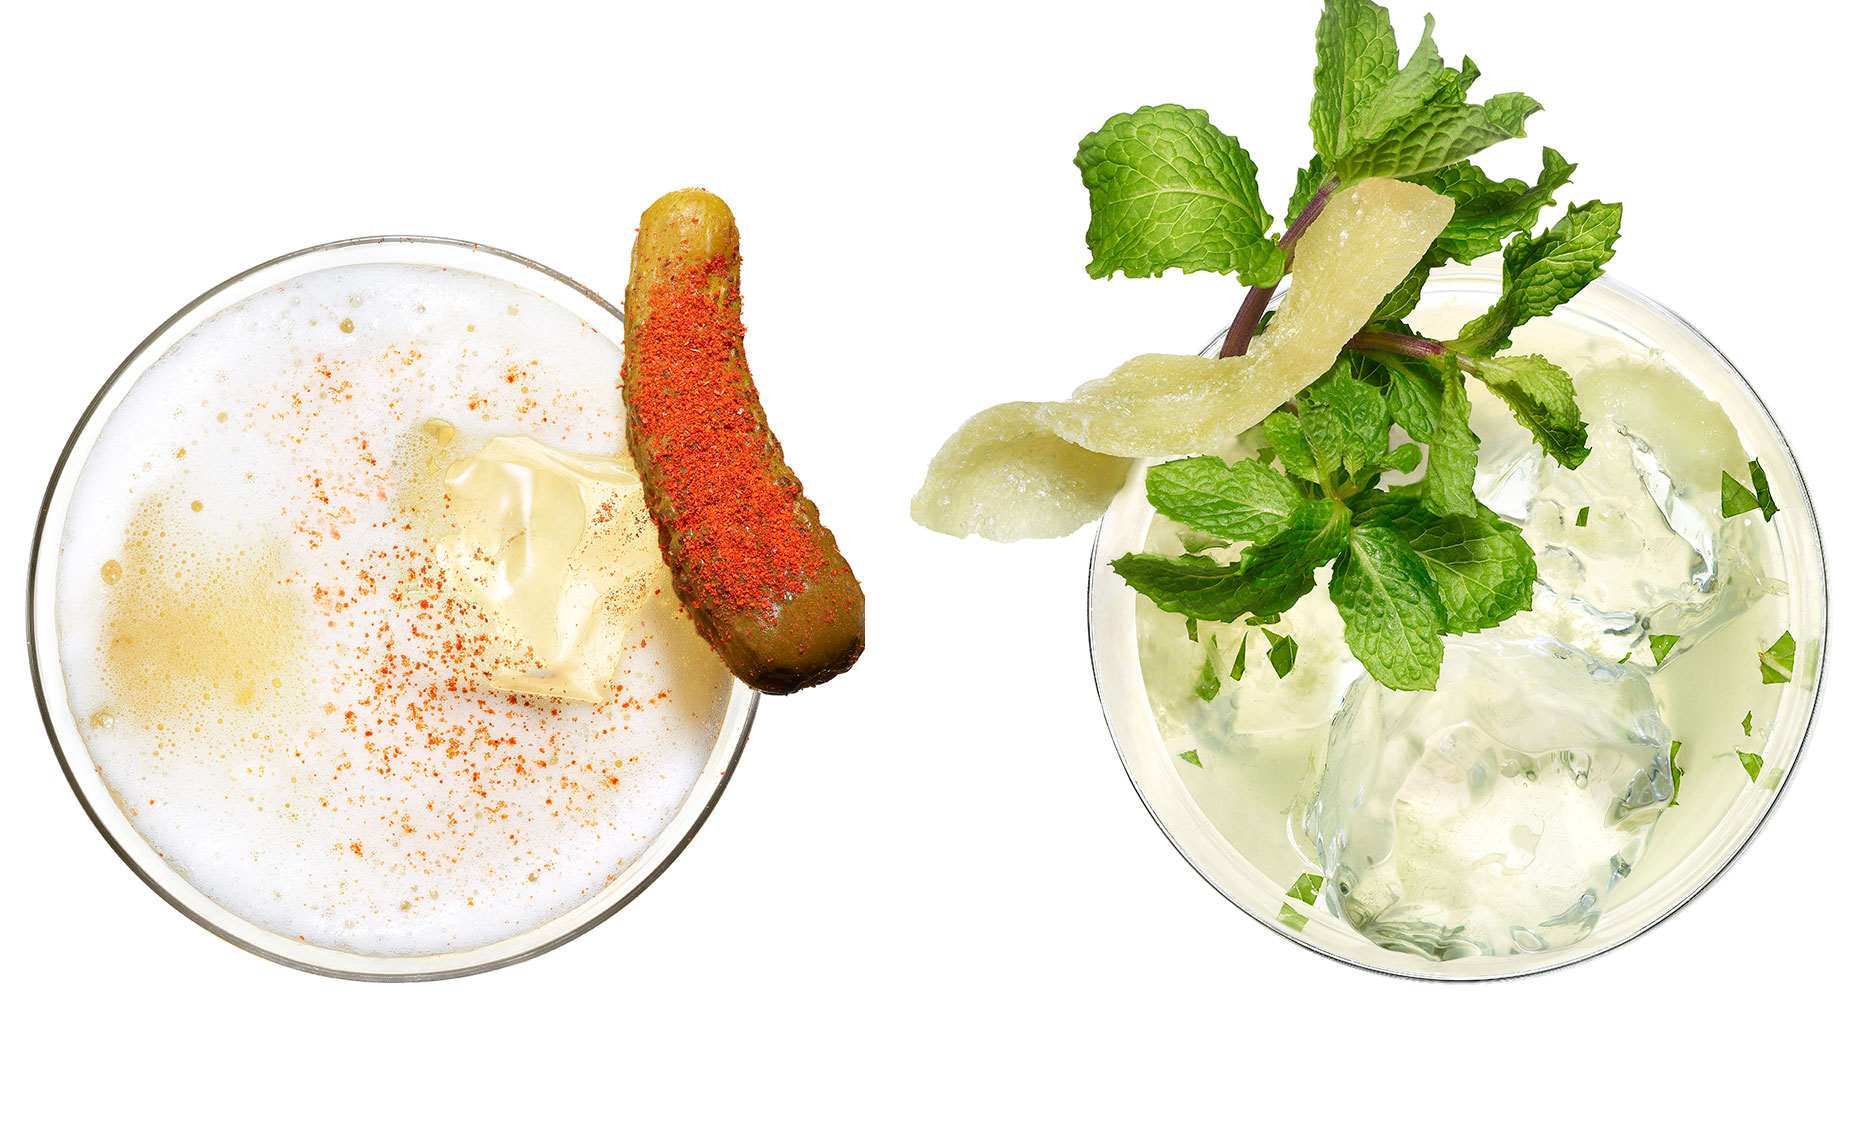 pickle-overhead-and-ginger-mint-overhead.jpg